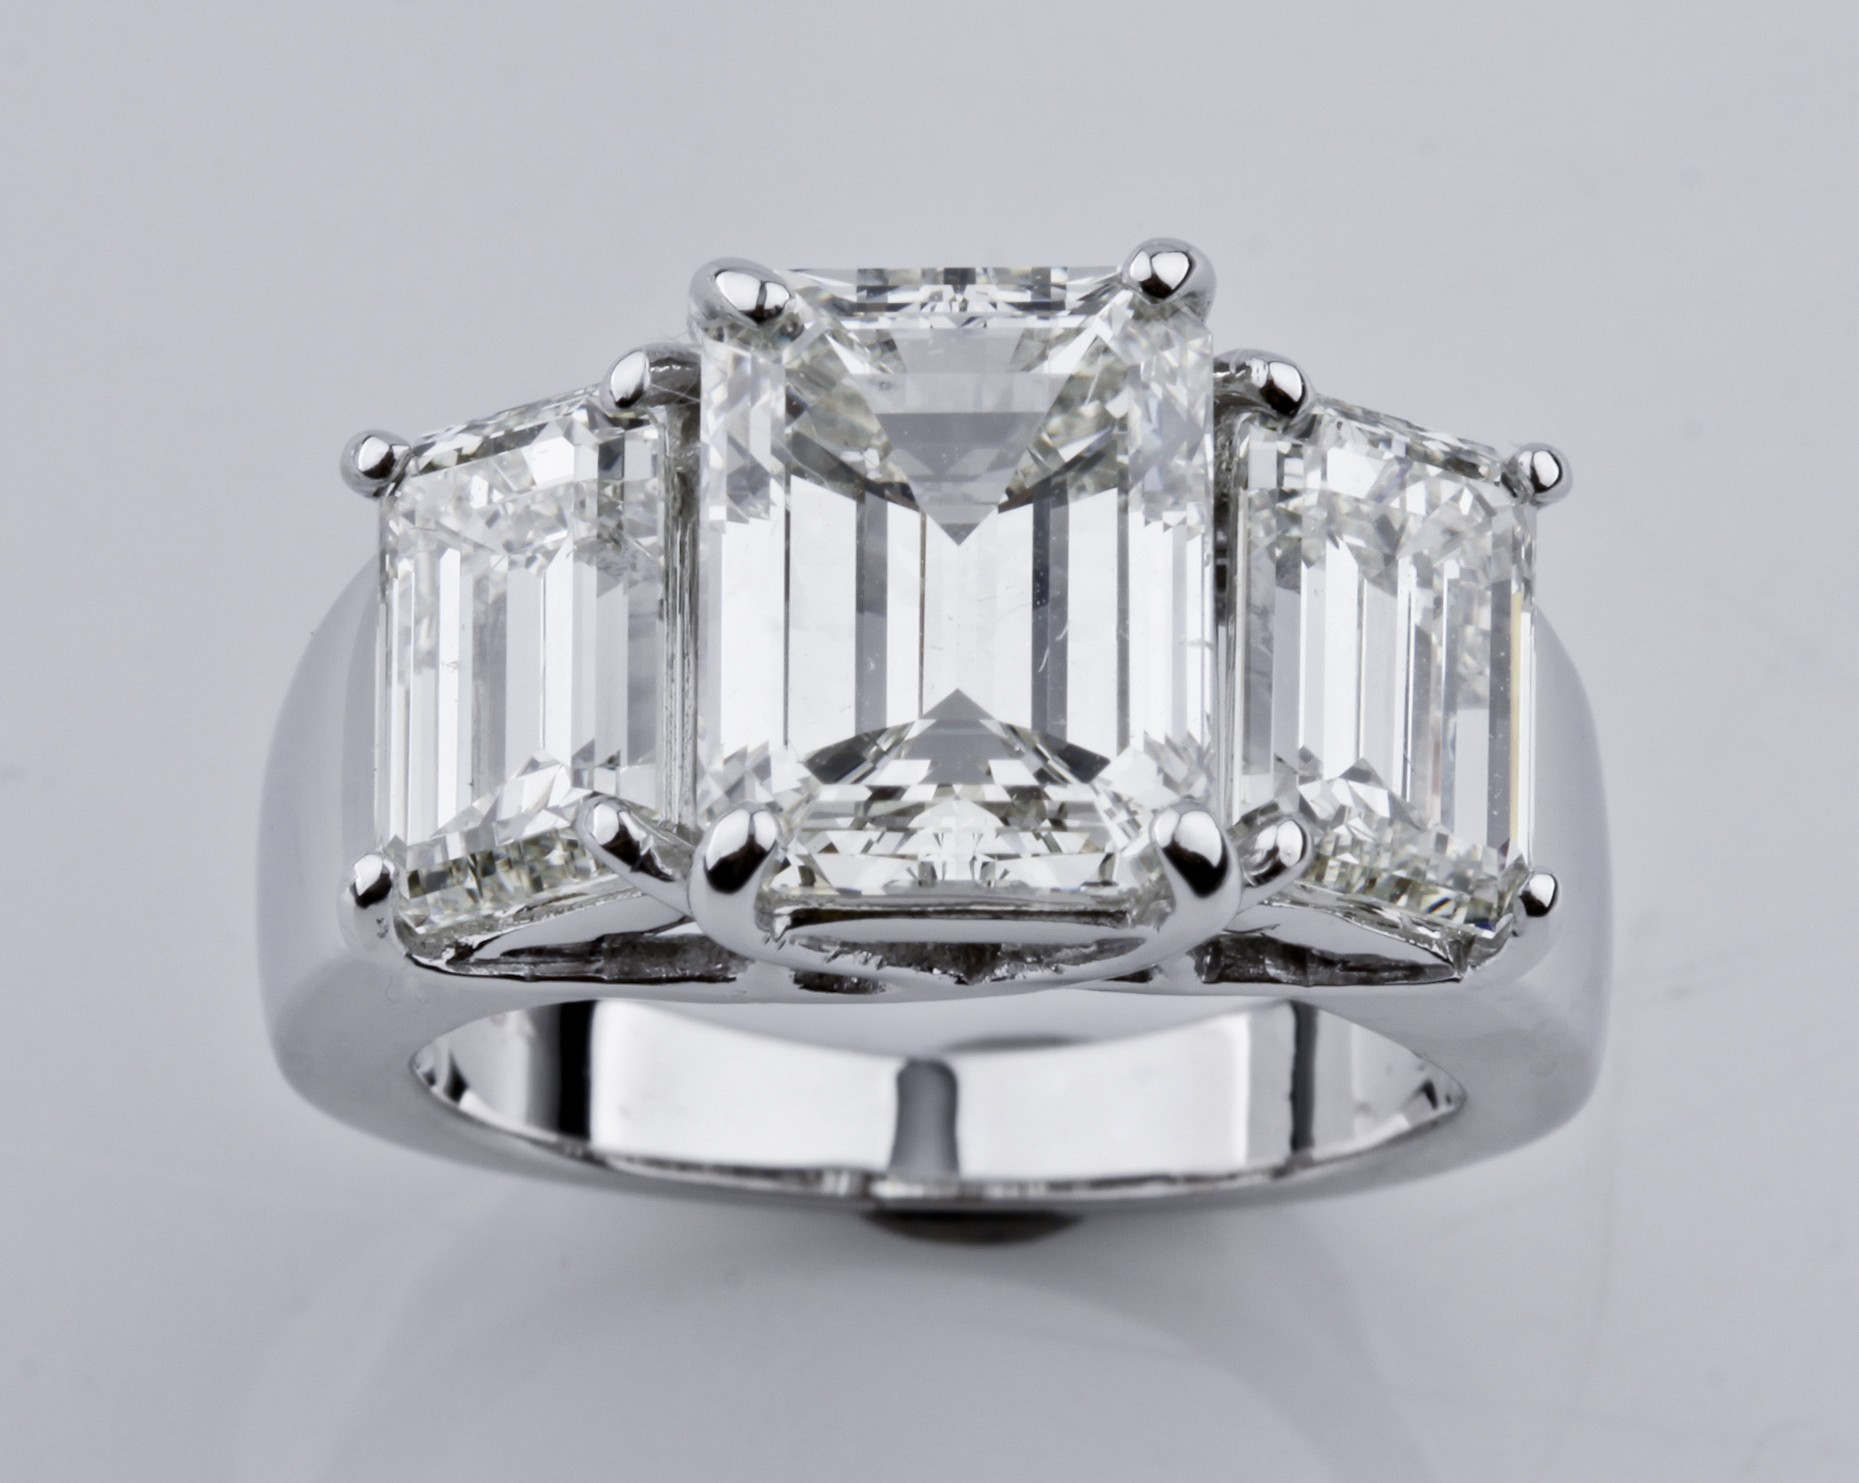 18k White Gold 4.17ct carat Emerald-Cut 3-Stone Diamond Engagement Ring 7.66tcw